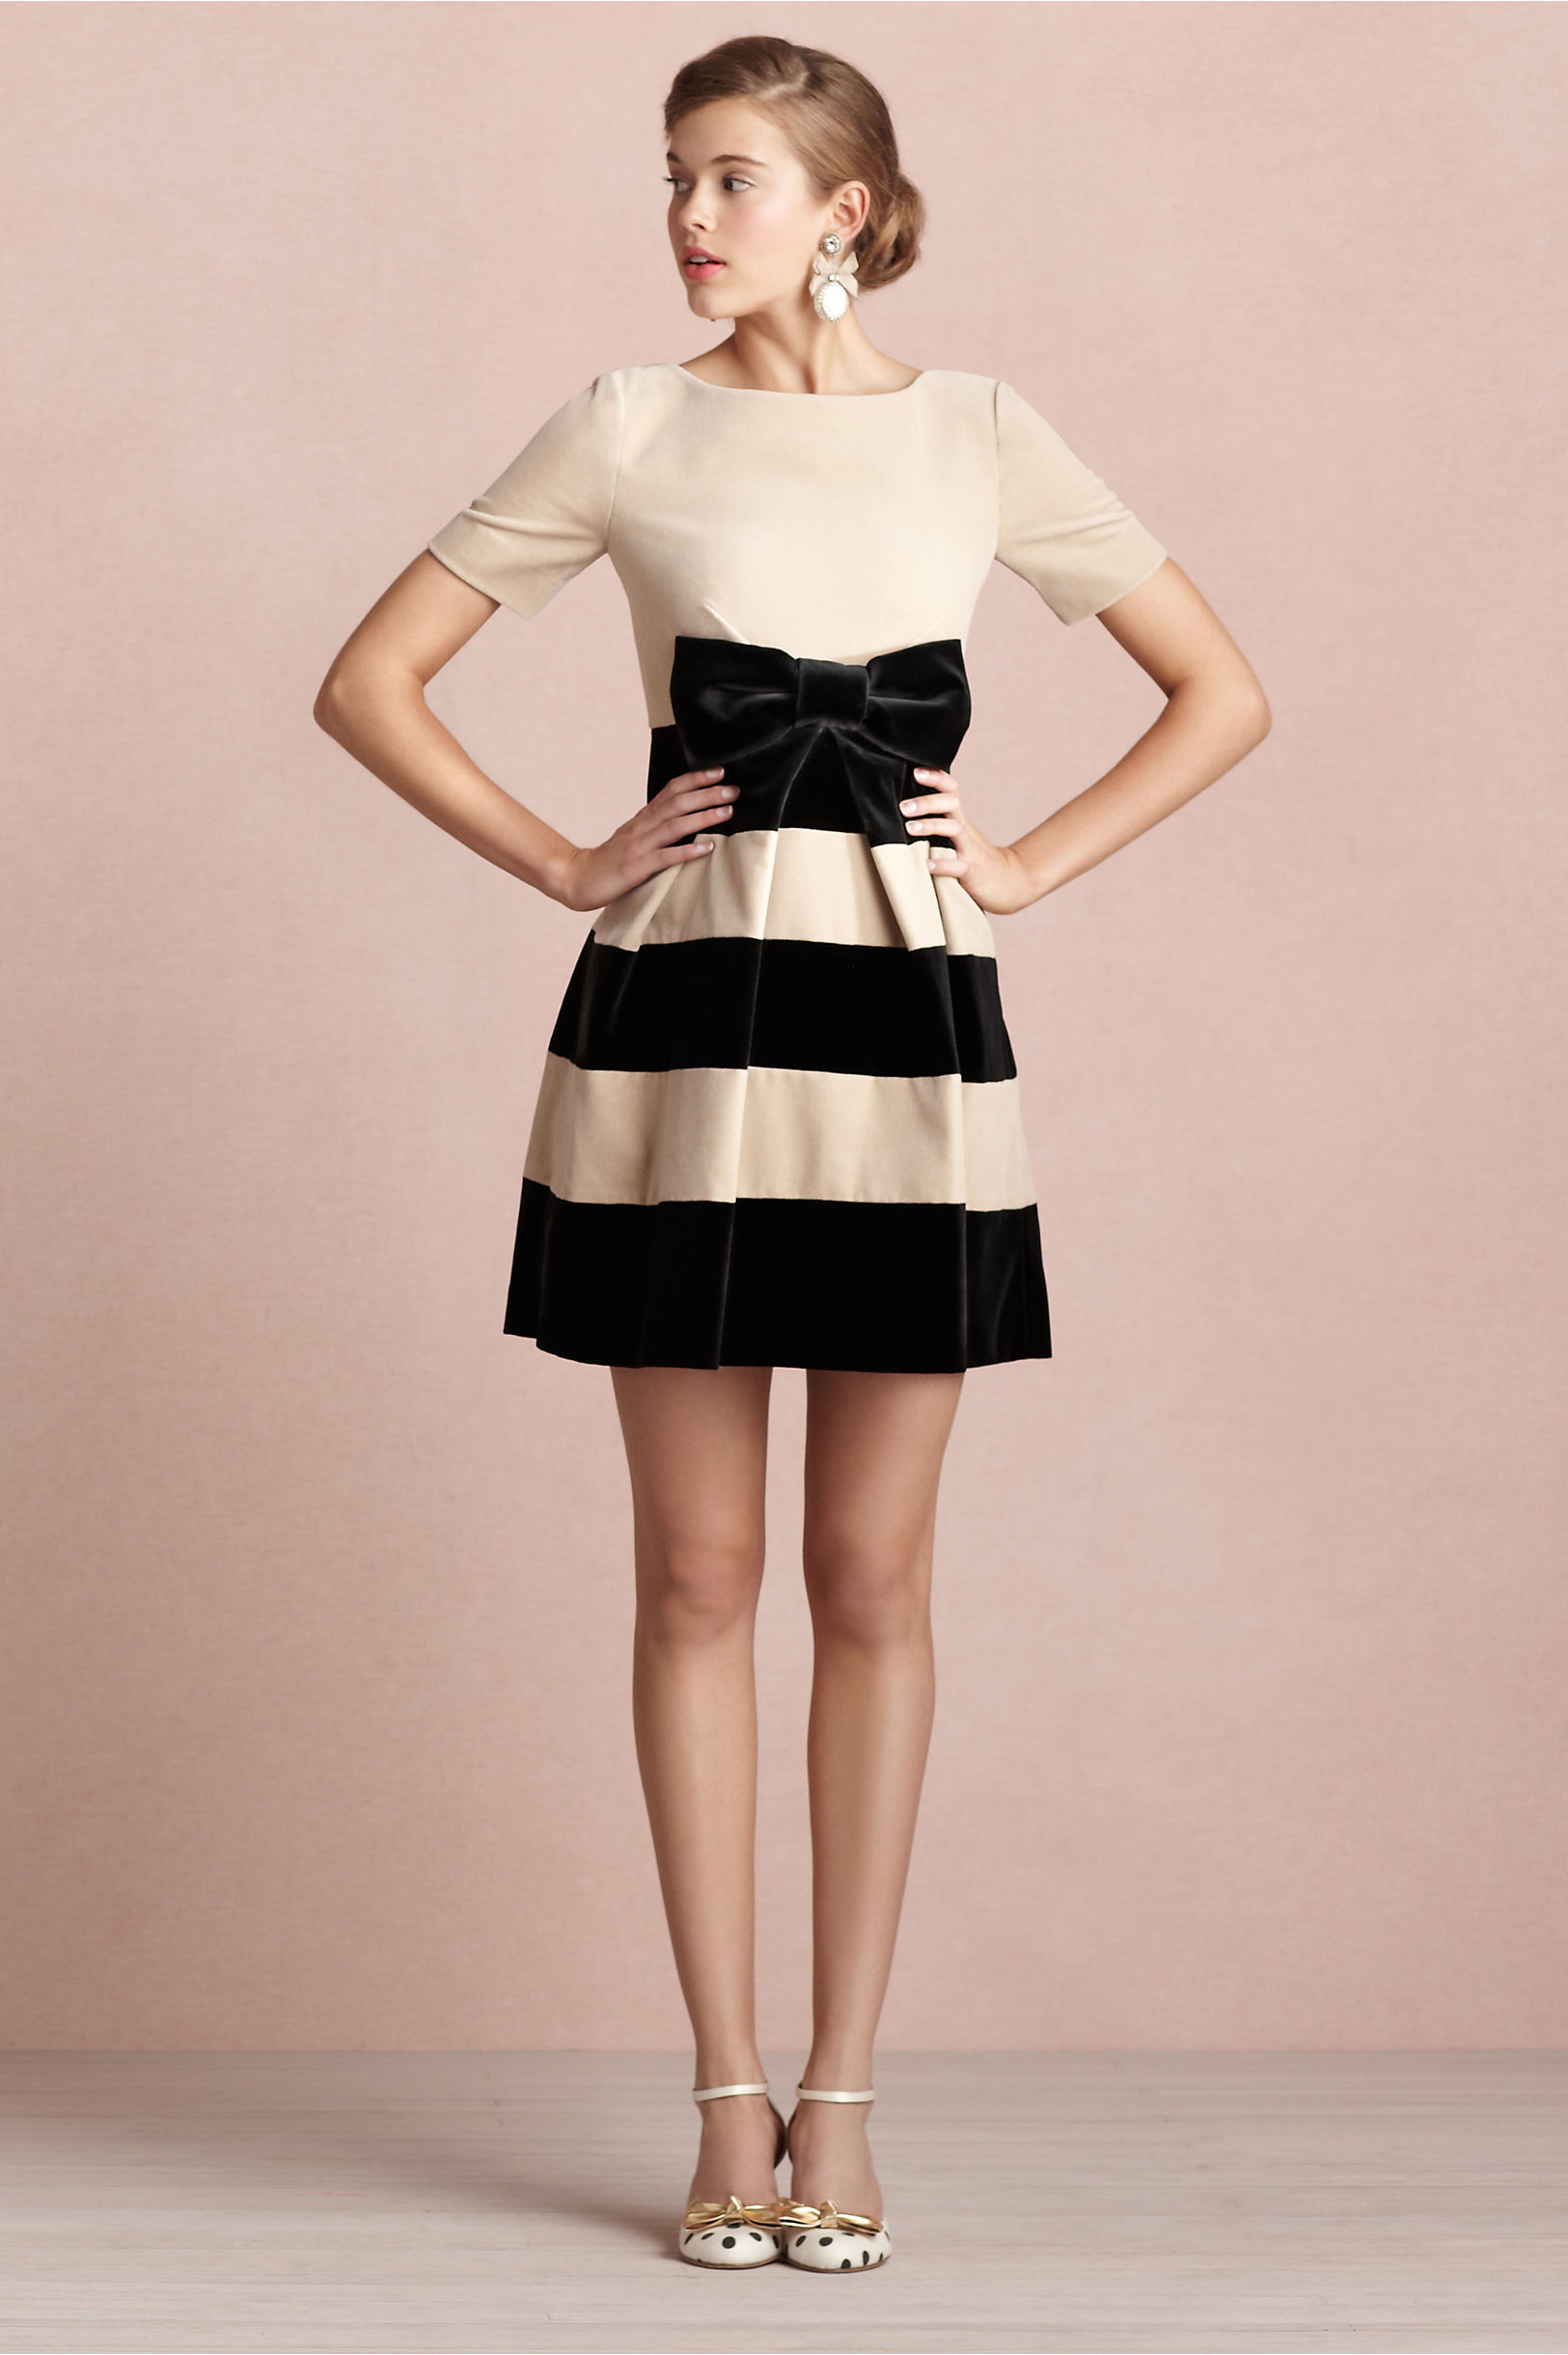 Covetable-bridesmaid-dresses-from-bhldn-2013-bridal-party-style-black-cream.original